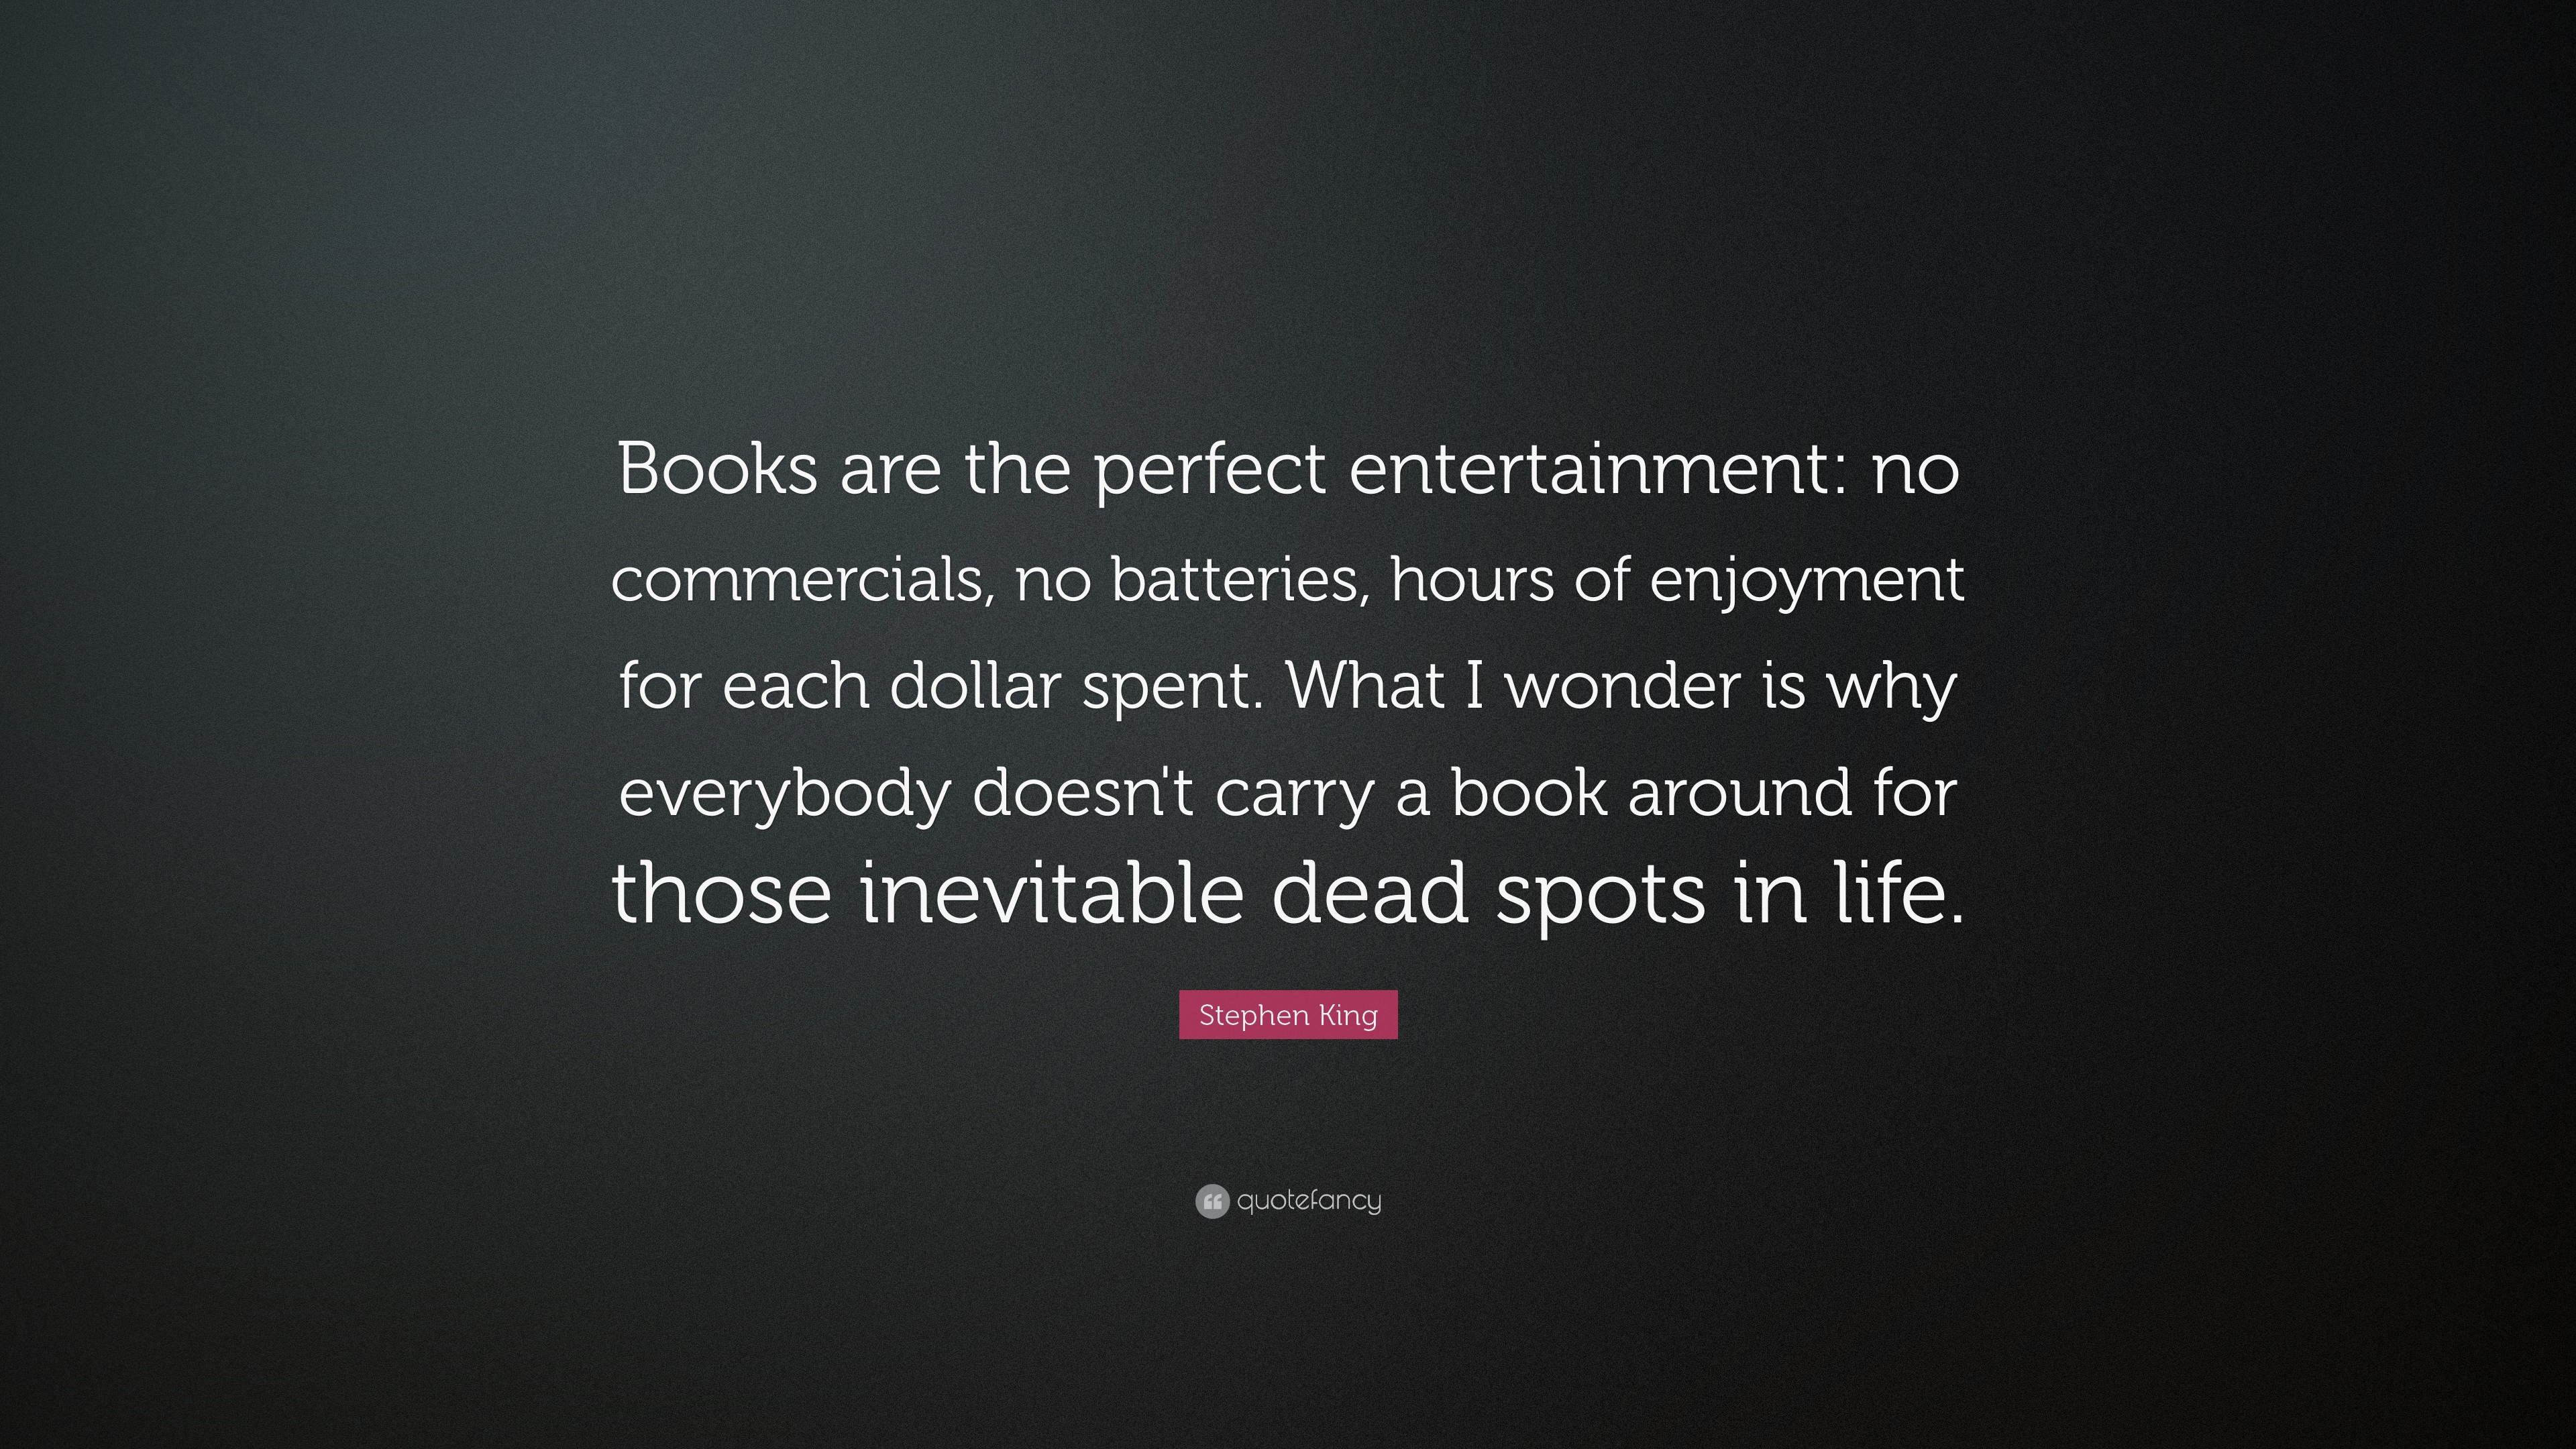 Book Quotes About Life Quotes About Books And Reading 22 Wallpapers  Quotefancy